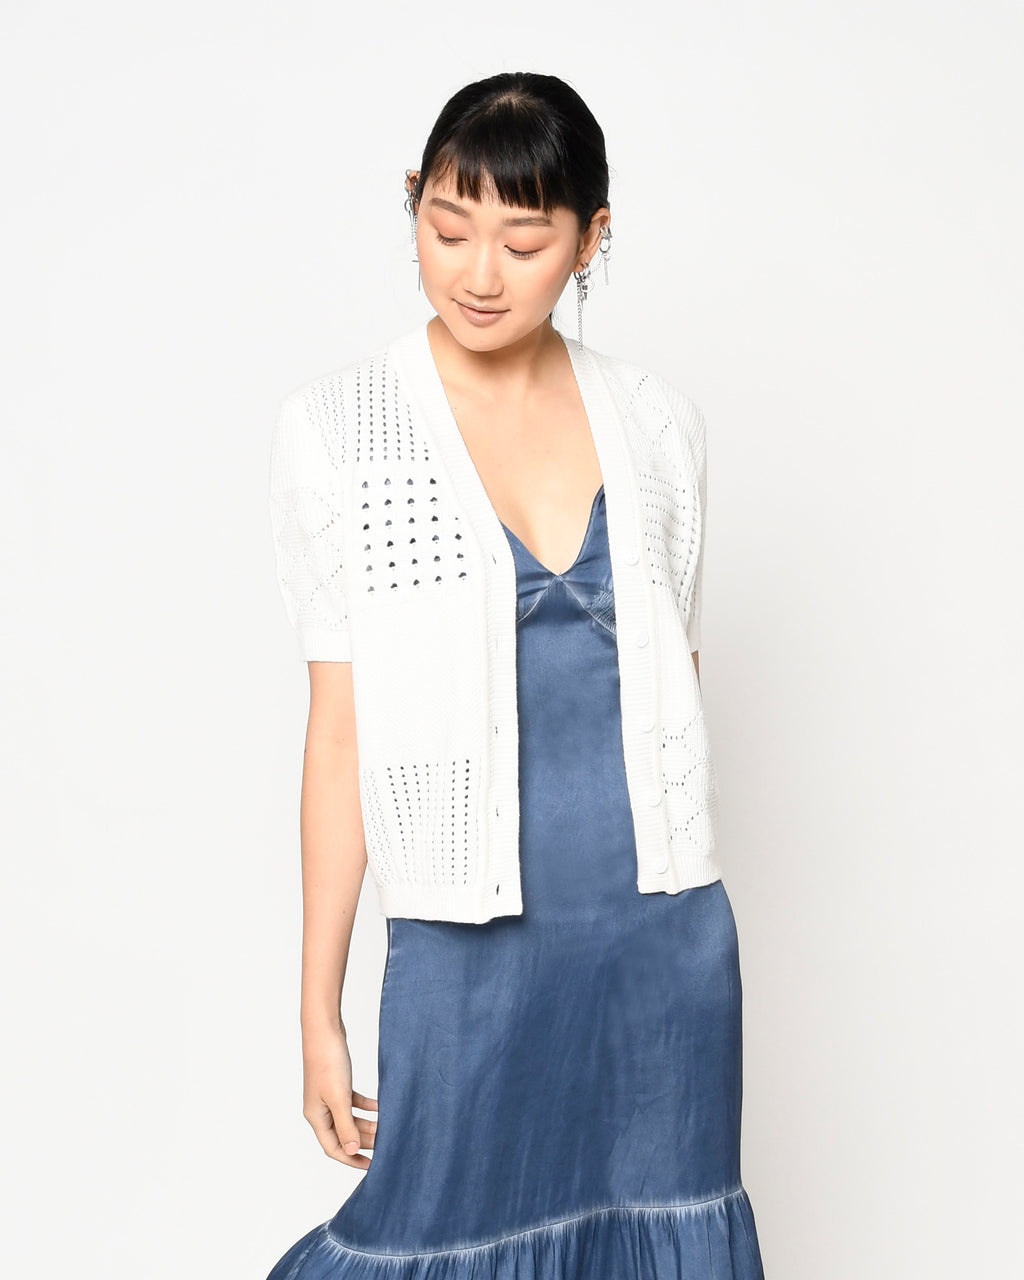 CT18862 - PATCHWORK CARDIGAN SWEATER - tops - knitwear - Our patchwork cardigan is designed in a stunning ivory color with alternating knitted patterns. Featuring 5 buttons up the front, this style can easily be worn buttoned or unbuttoned. Add 1 line break Throw on over one of our easy summer dresses.